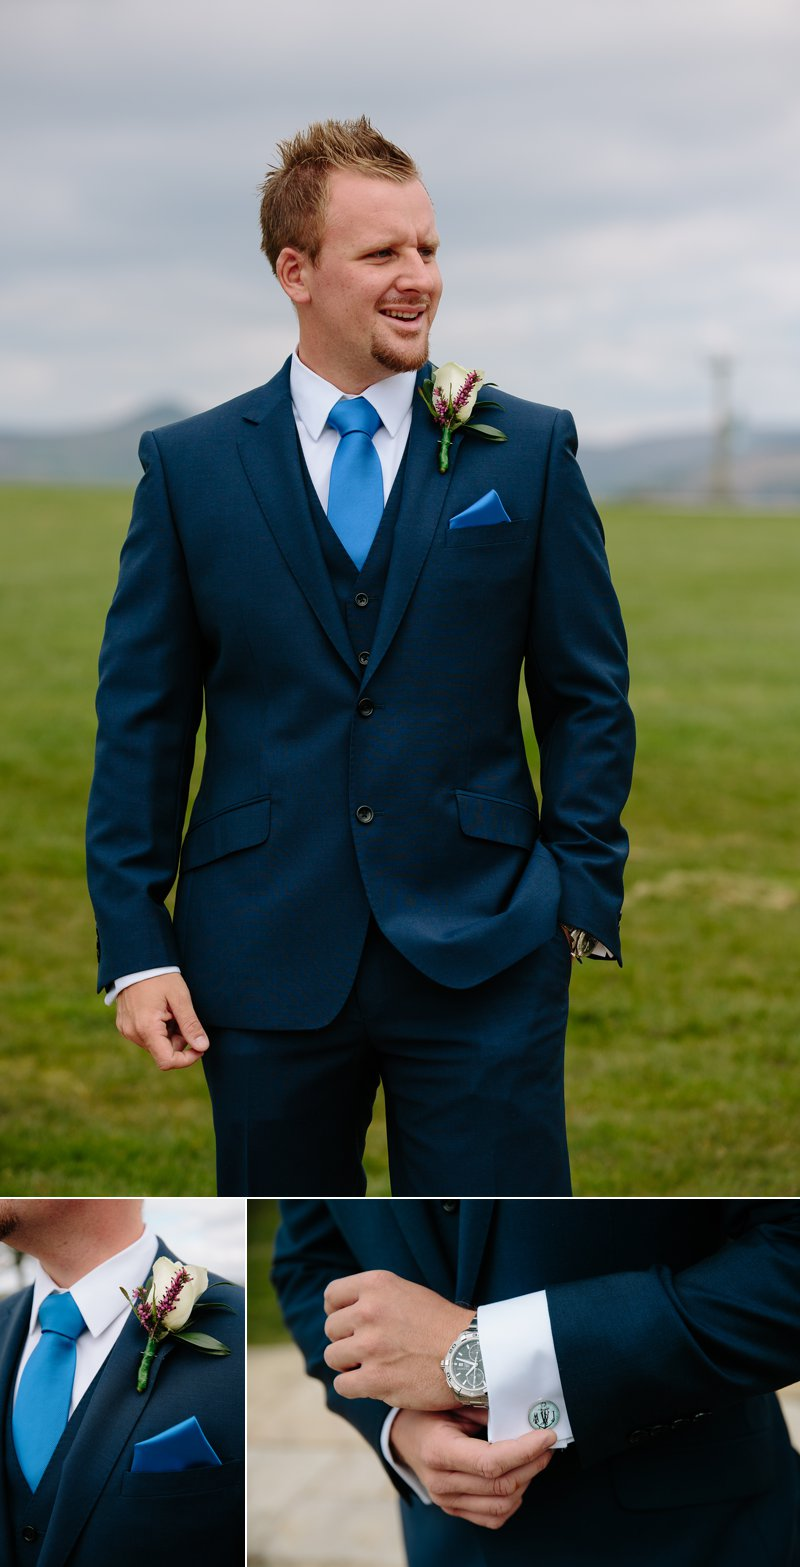 Groom photographs with cufflinks and buttonhole